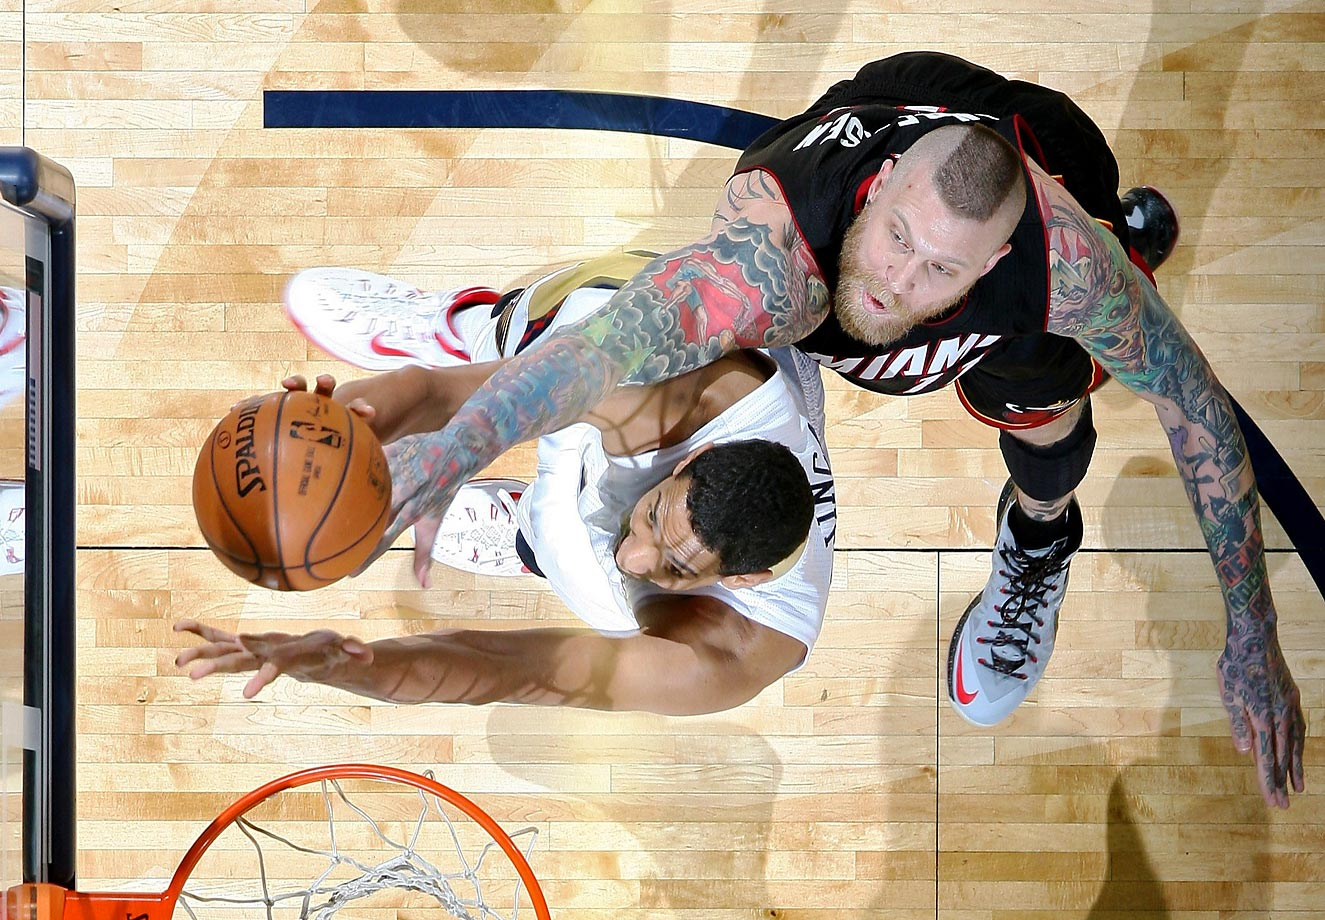 Chris Andersen of the Miami Heat goes up for a block against the New Orleans Pelicans' Alexis Ajinça.